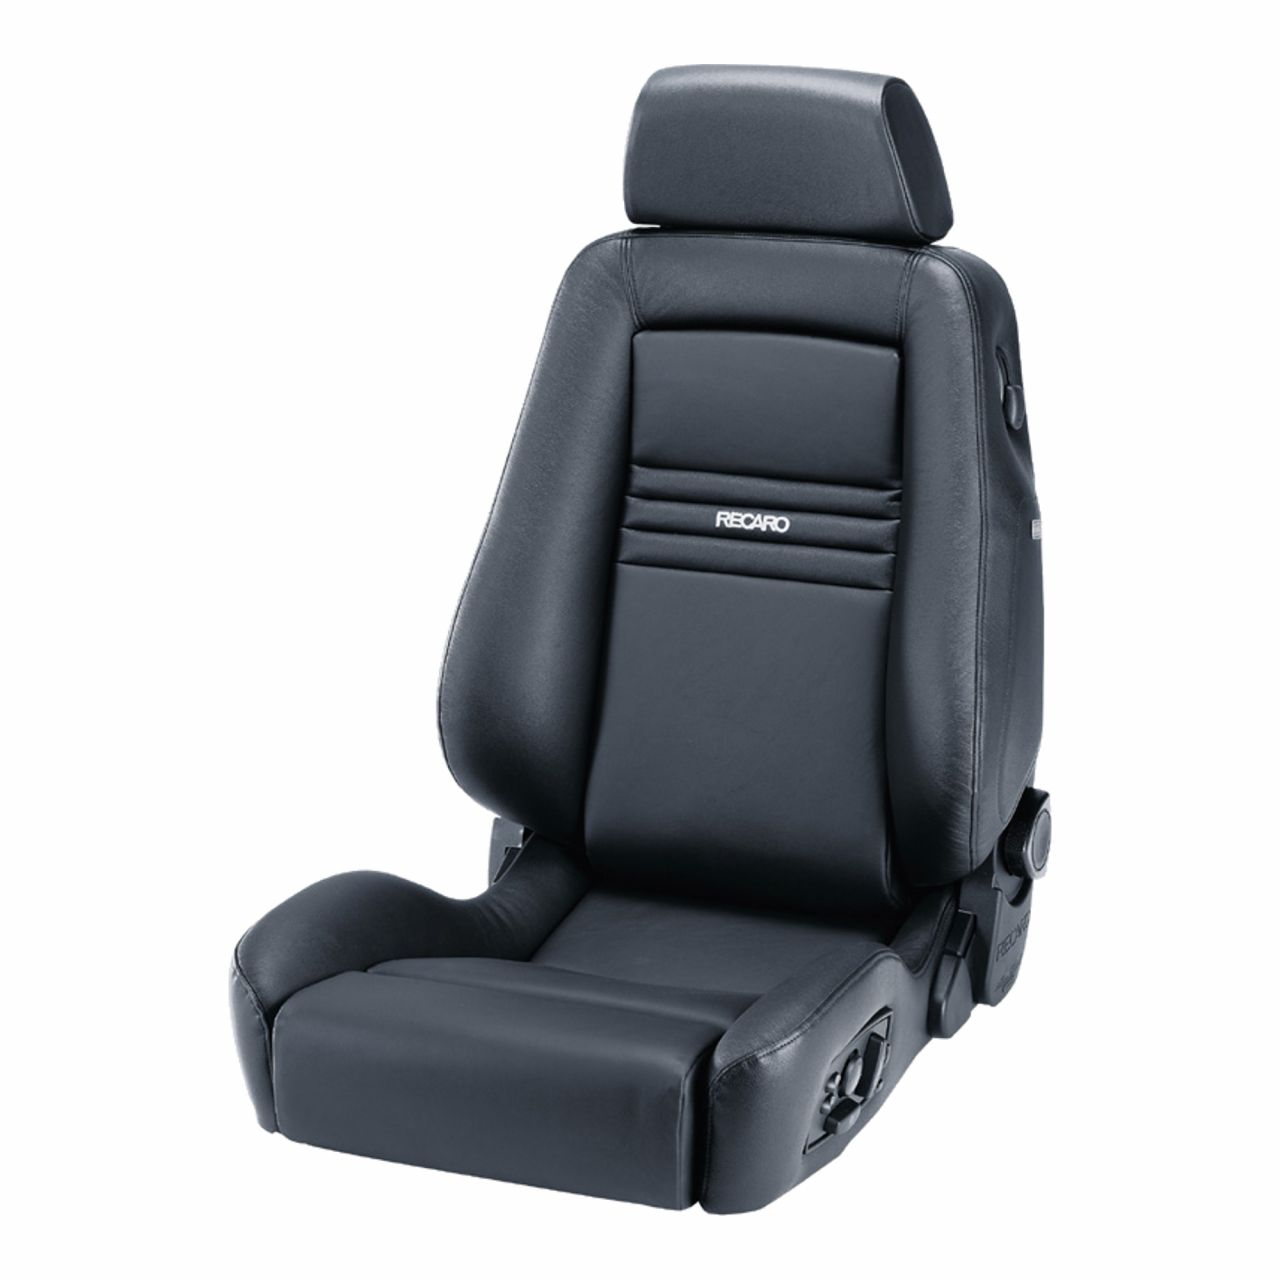 Recaro ergomed es reclining sport seat gsm sport seats for Siege voiture